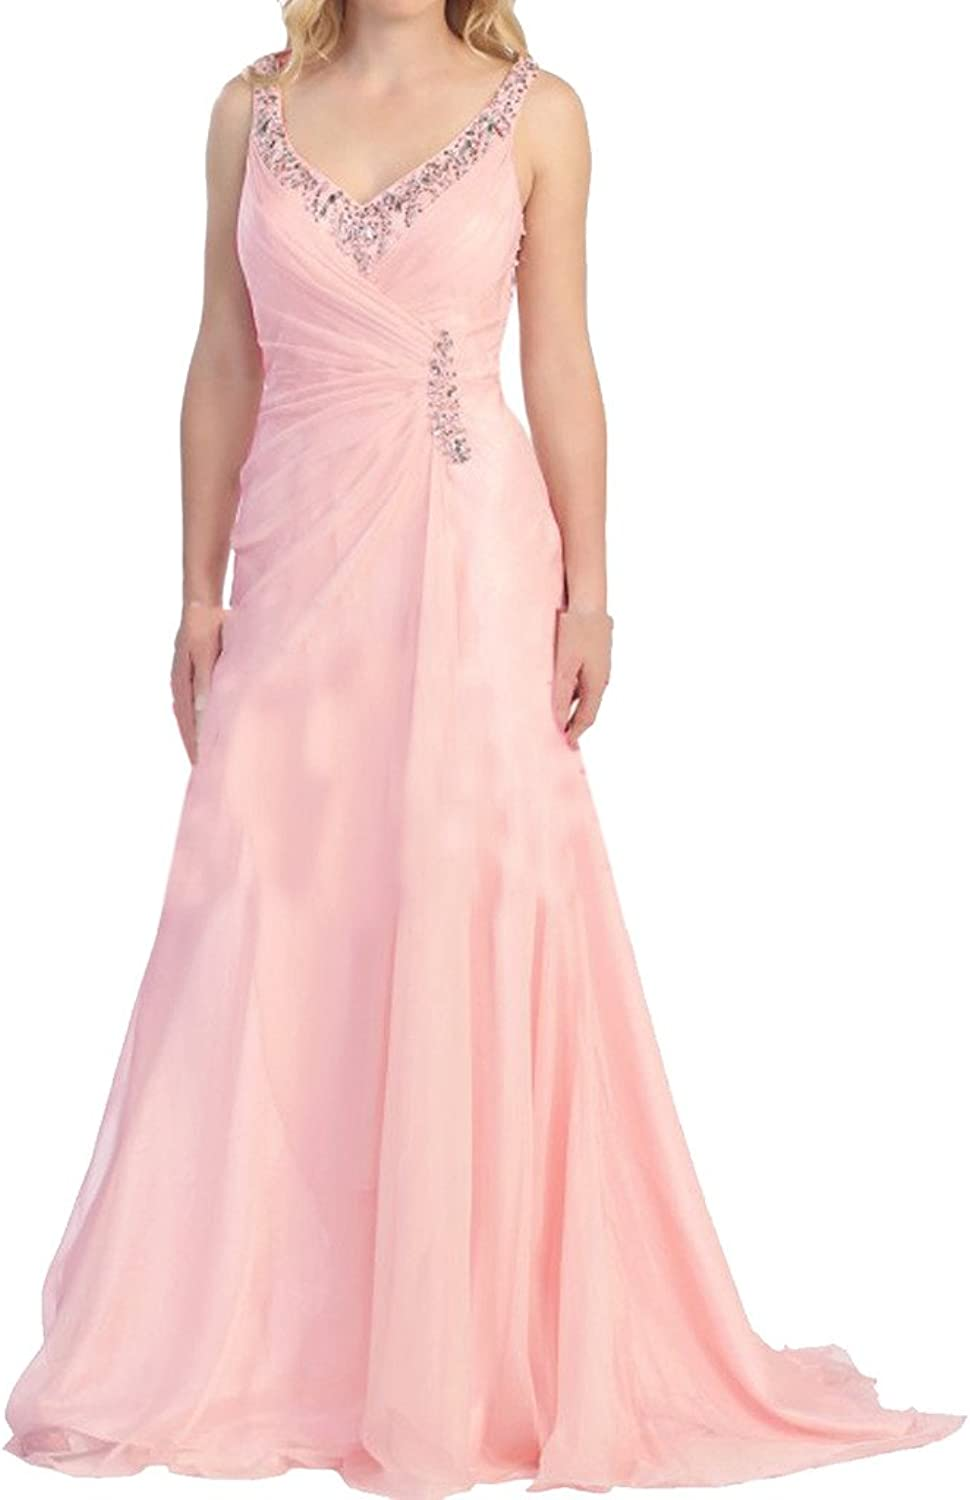 Avril Dress Elegant Straps Mother of Bride V Neck Illusion Back Long Dress